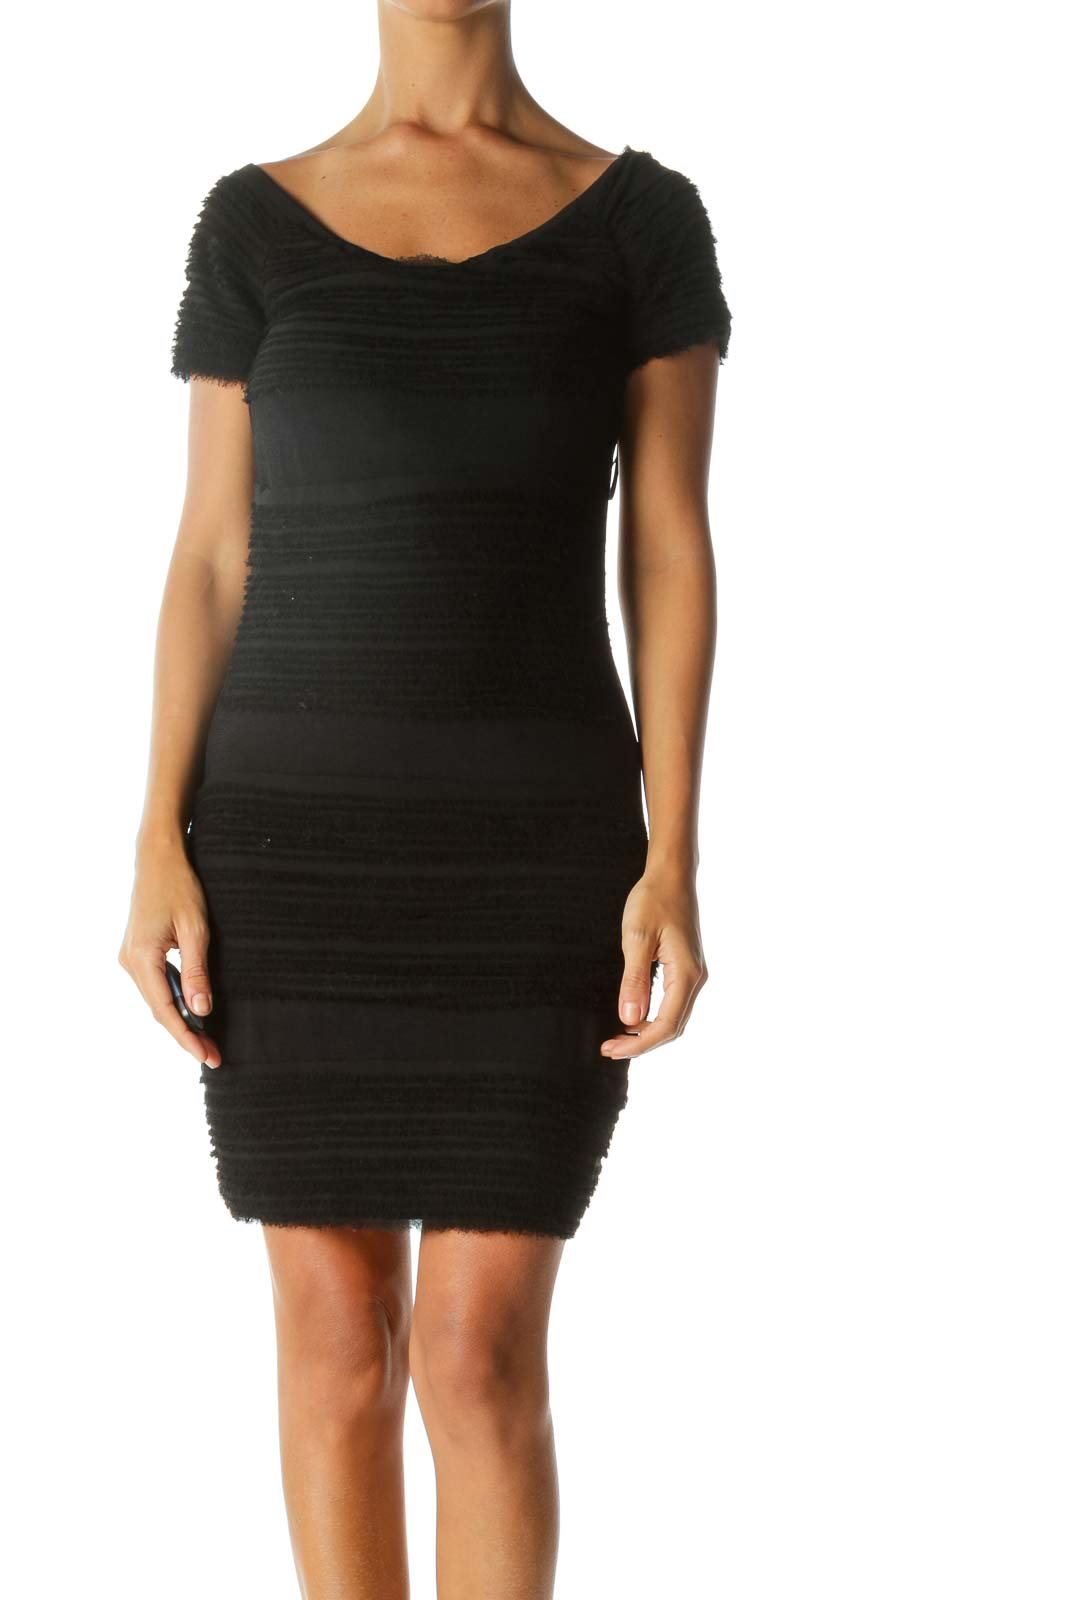 Black Textured Short Sleeve Cold-Shoulder Stretch Cocktail Dress